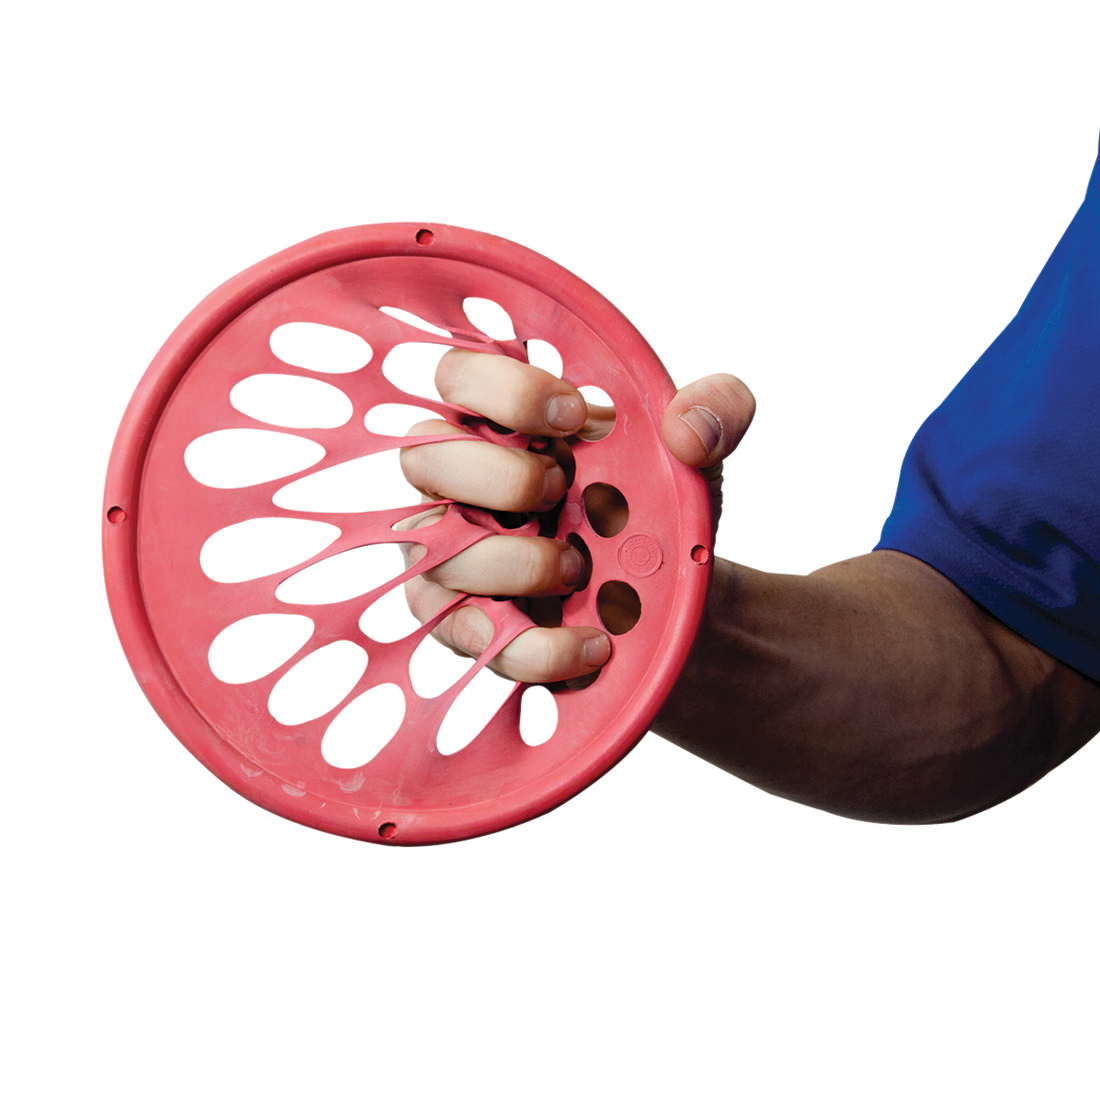 Cando Hand Exercise Web Latex Free 7 Inch Diameter Just Home Medical